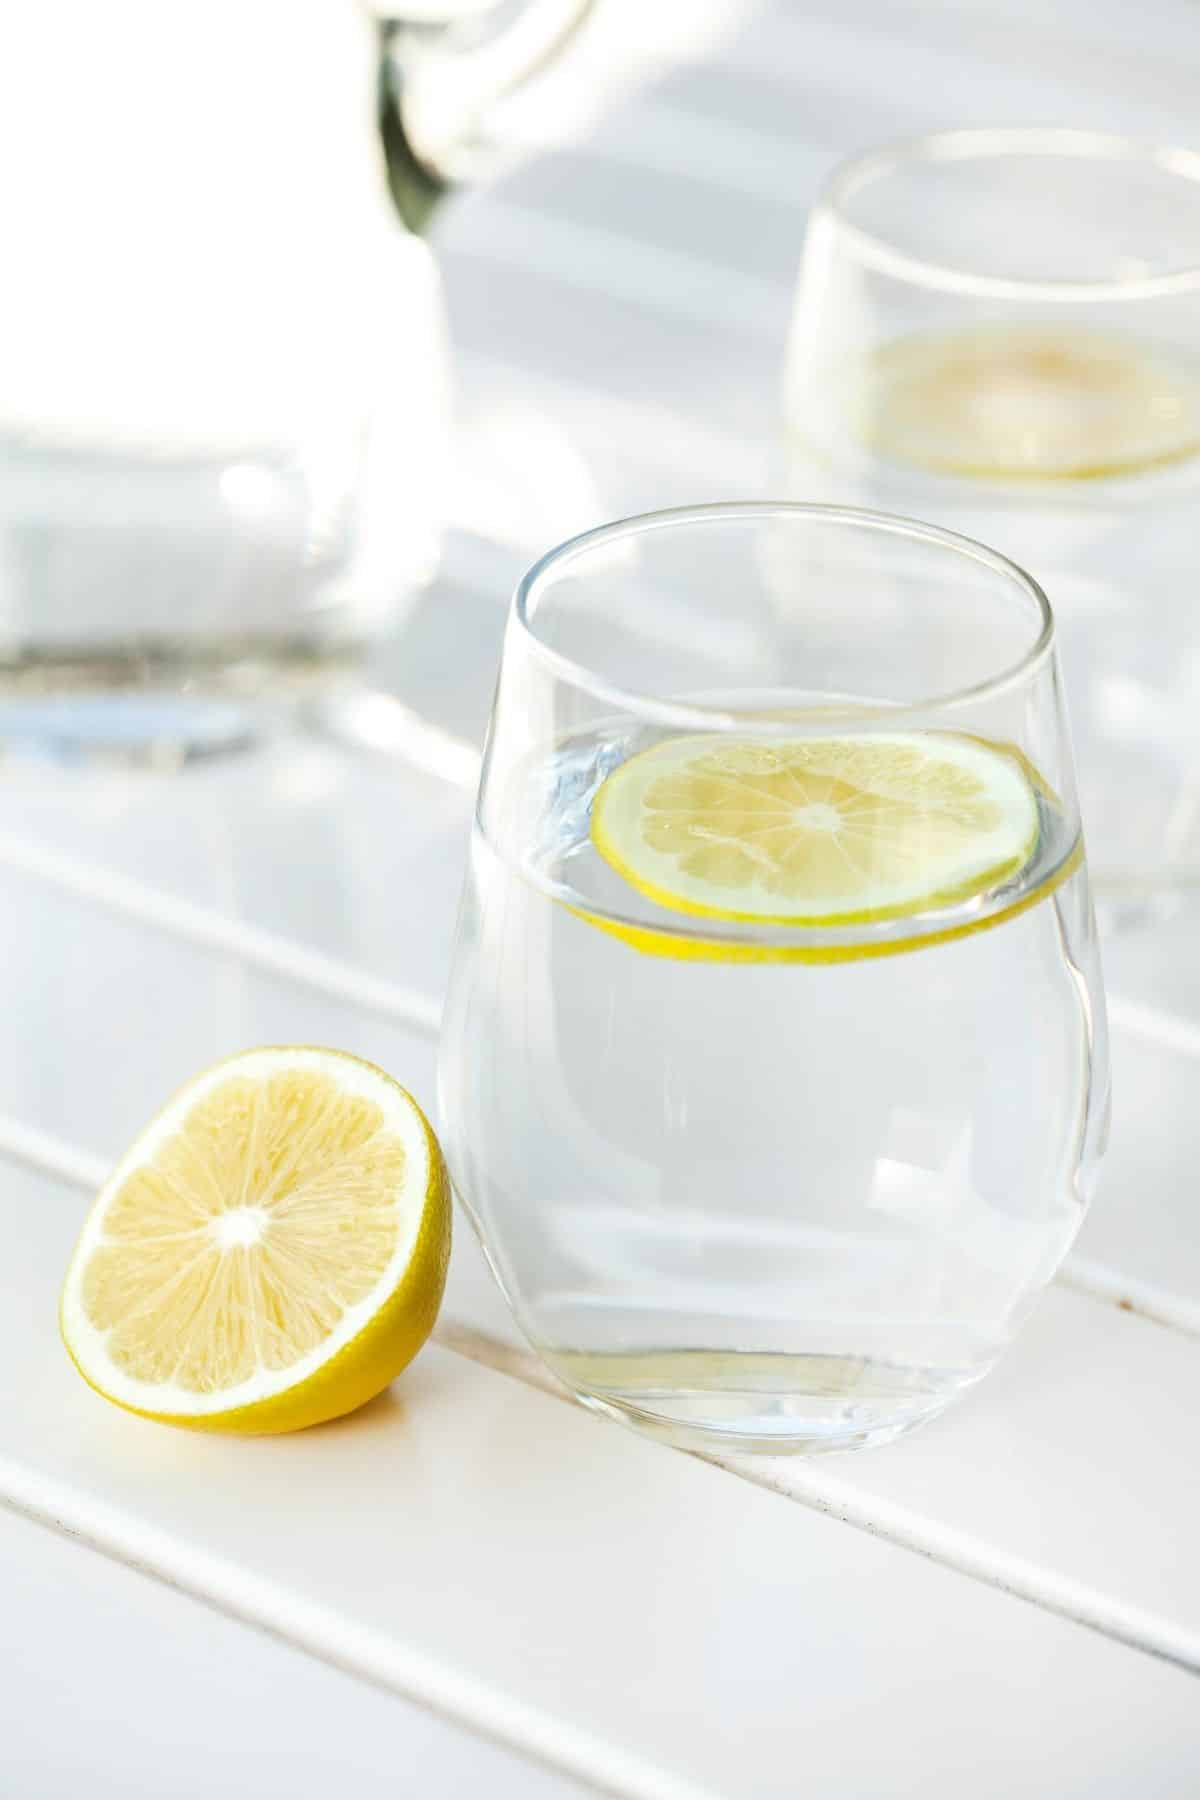 glass of water served with fresh lemon